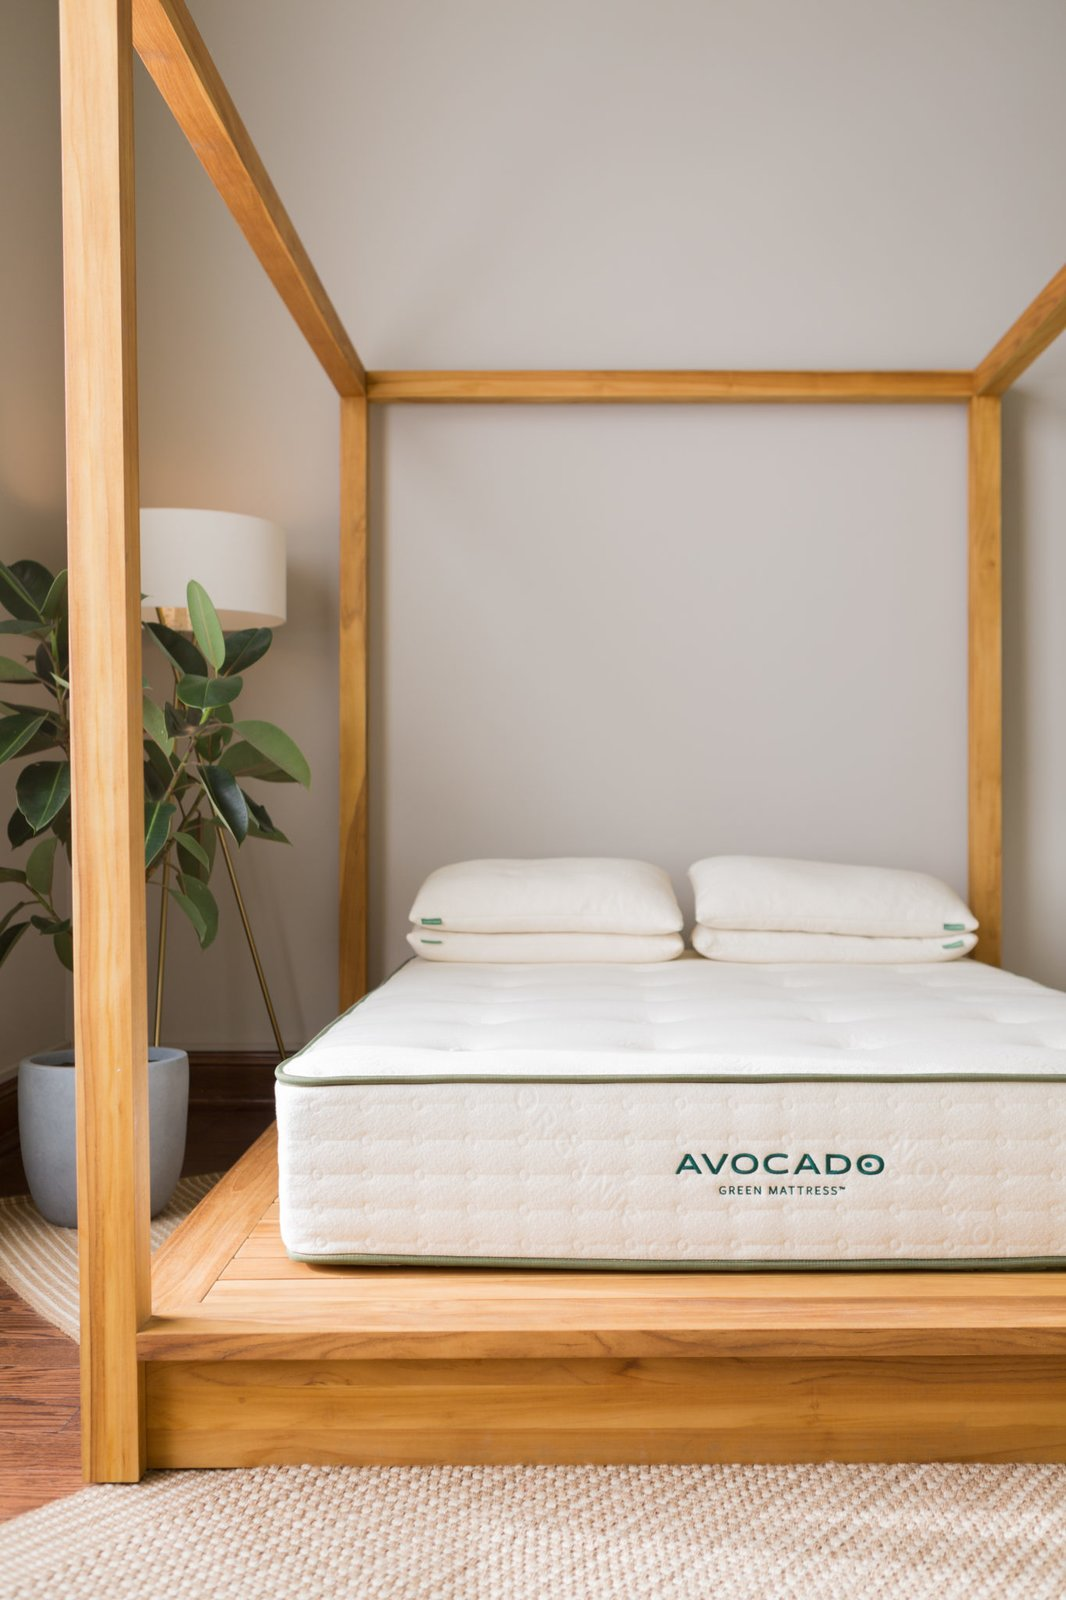 Avocado Green Mattress  Photo 5 of 8 in 7 Best Affordable Mattress Companies That Will Take You to Cloud Nine